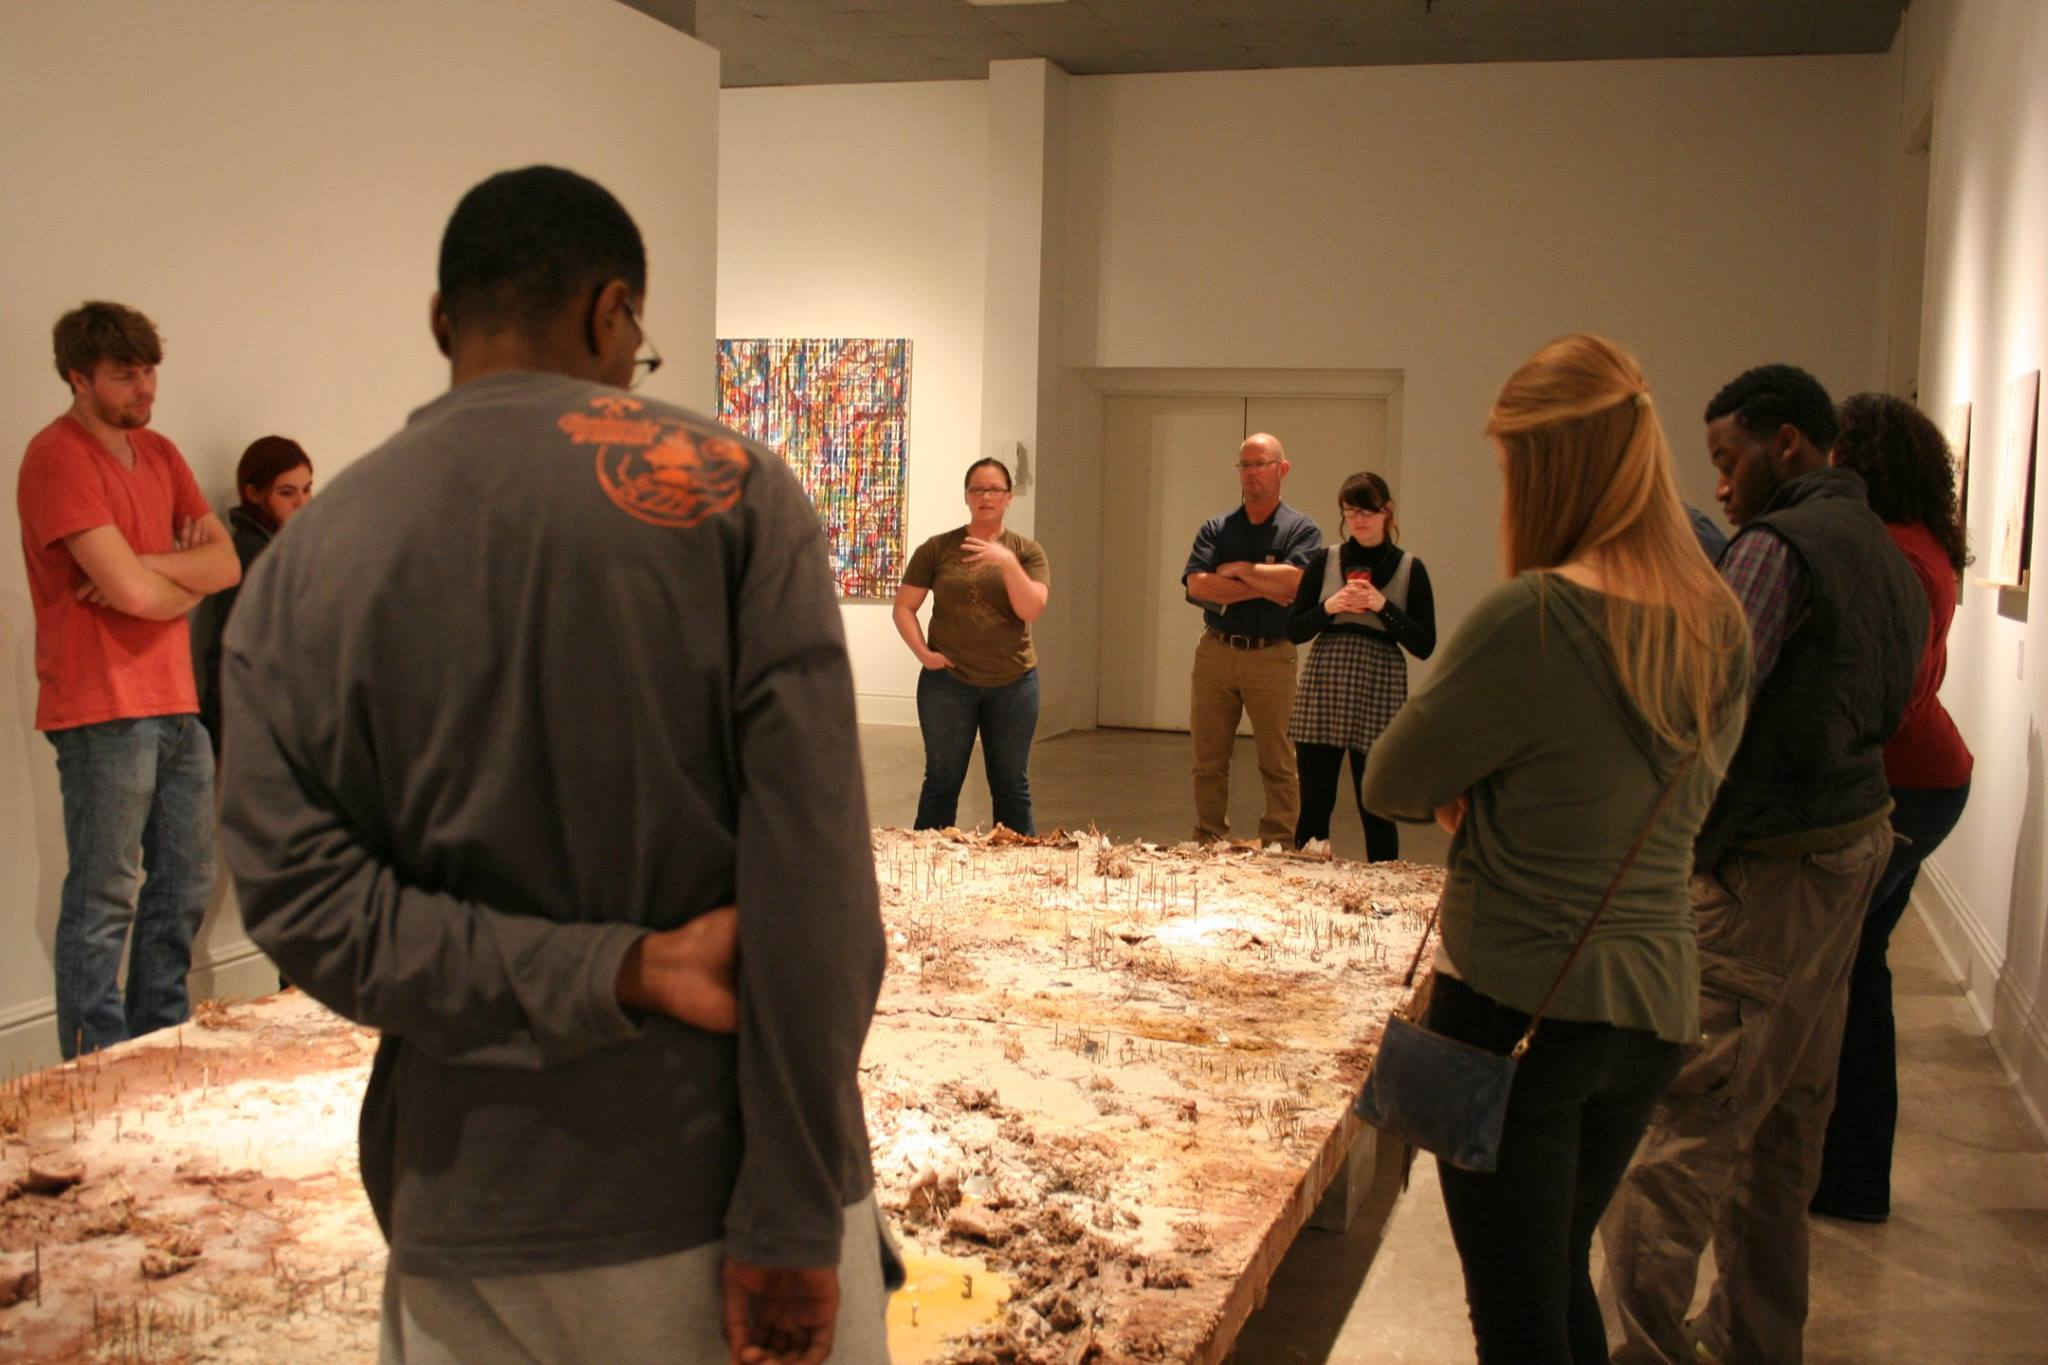 Class critiquiing work by Heather Leigh Whidden; painting by Joshua Whidden in background, in Bilateral; Memory & Experience, 2015, Sella-Granata Art Gallery.